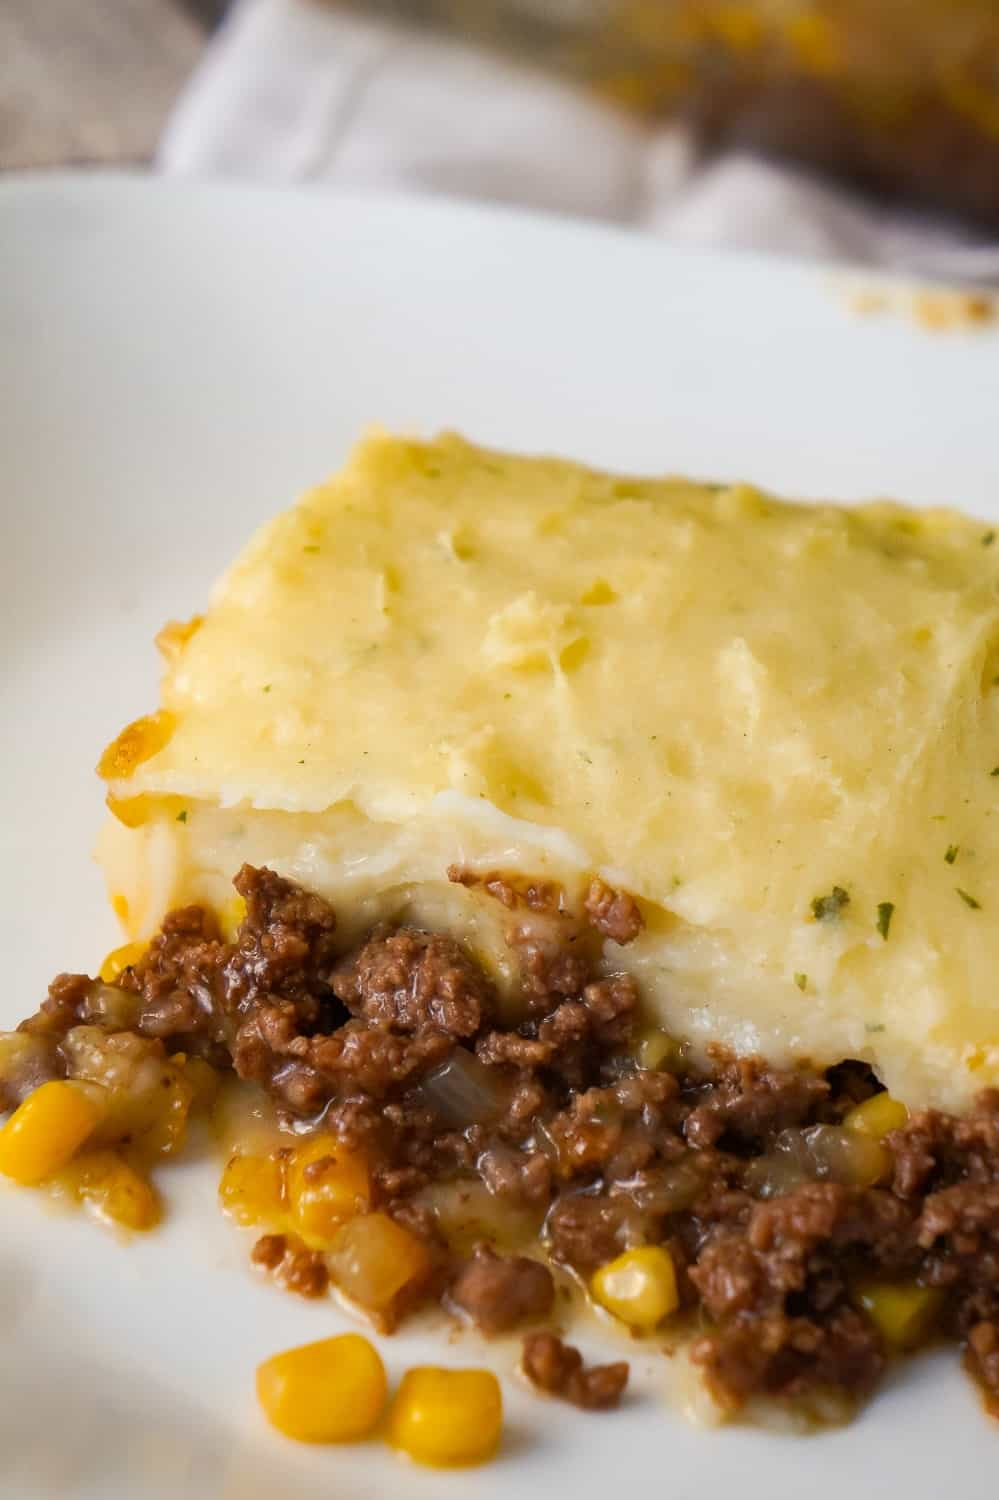 The Best Shepherd's Pie is an easy ground beef dinner recipe. A base of ground beef tossed in brown gravy is topped with corn and creamy mashed potatoes.